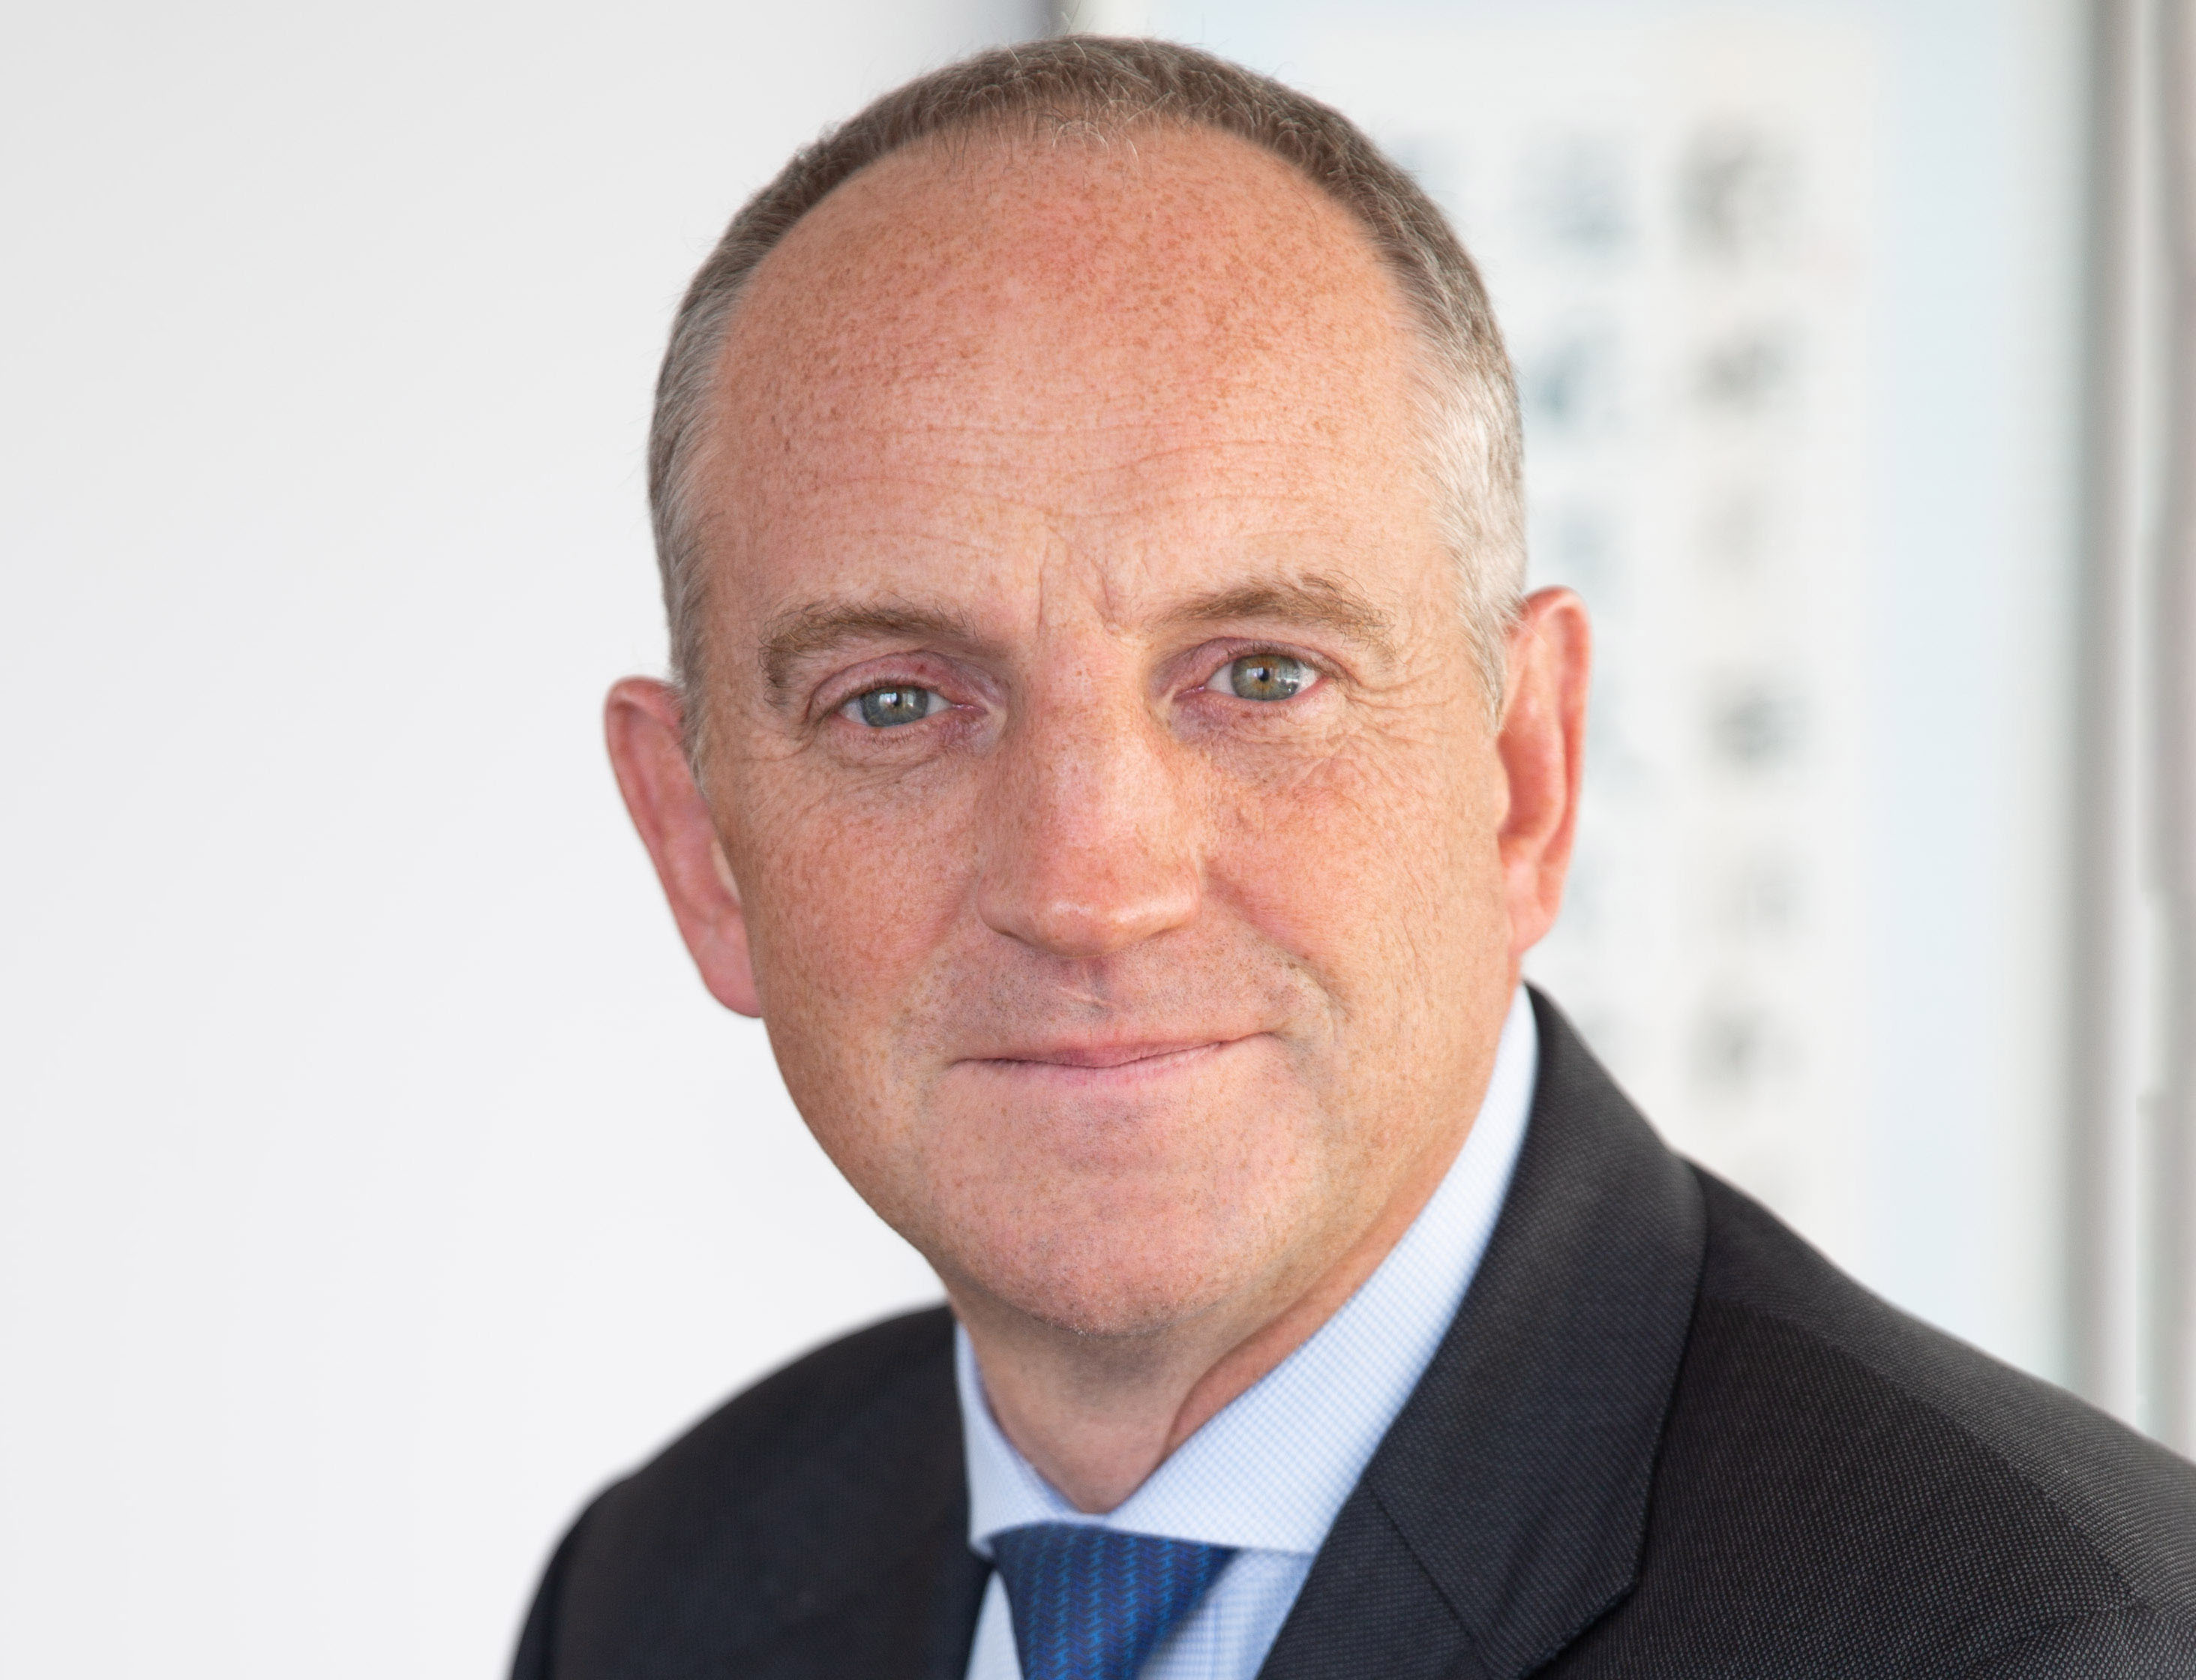 Former HSBC COO Joins Board at RegTech Disrupter